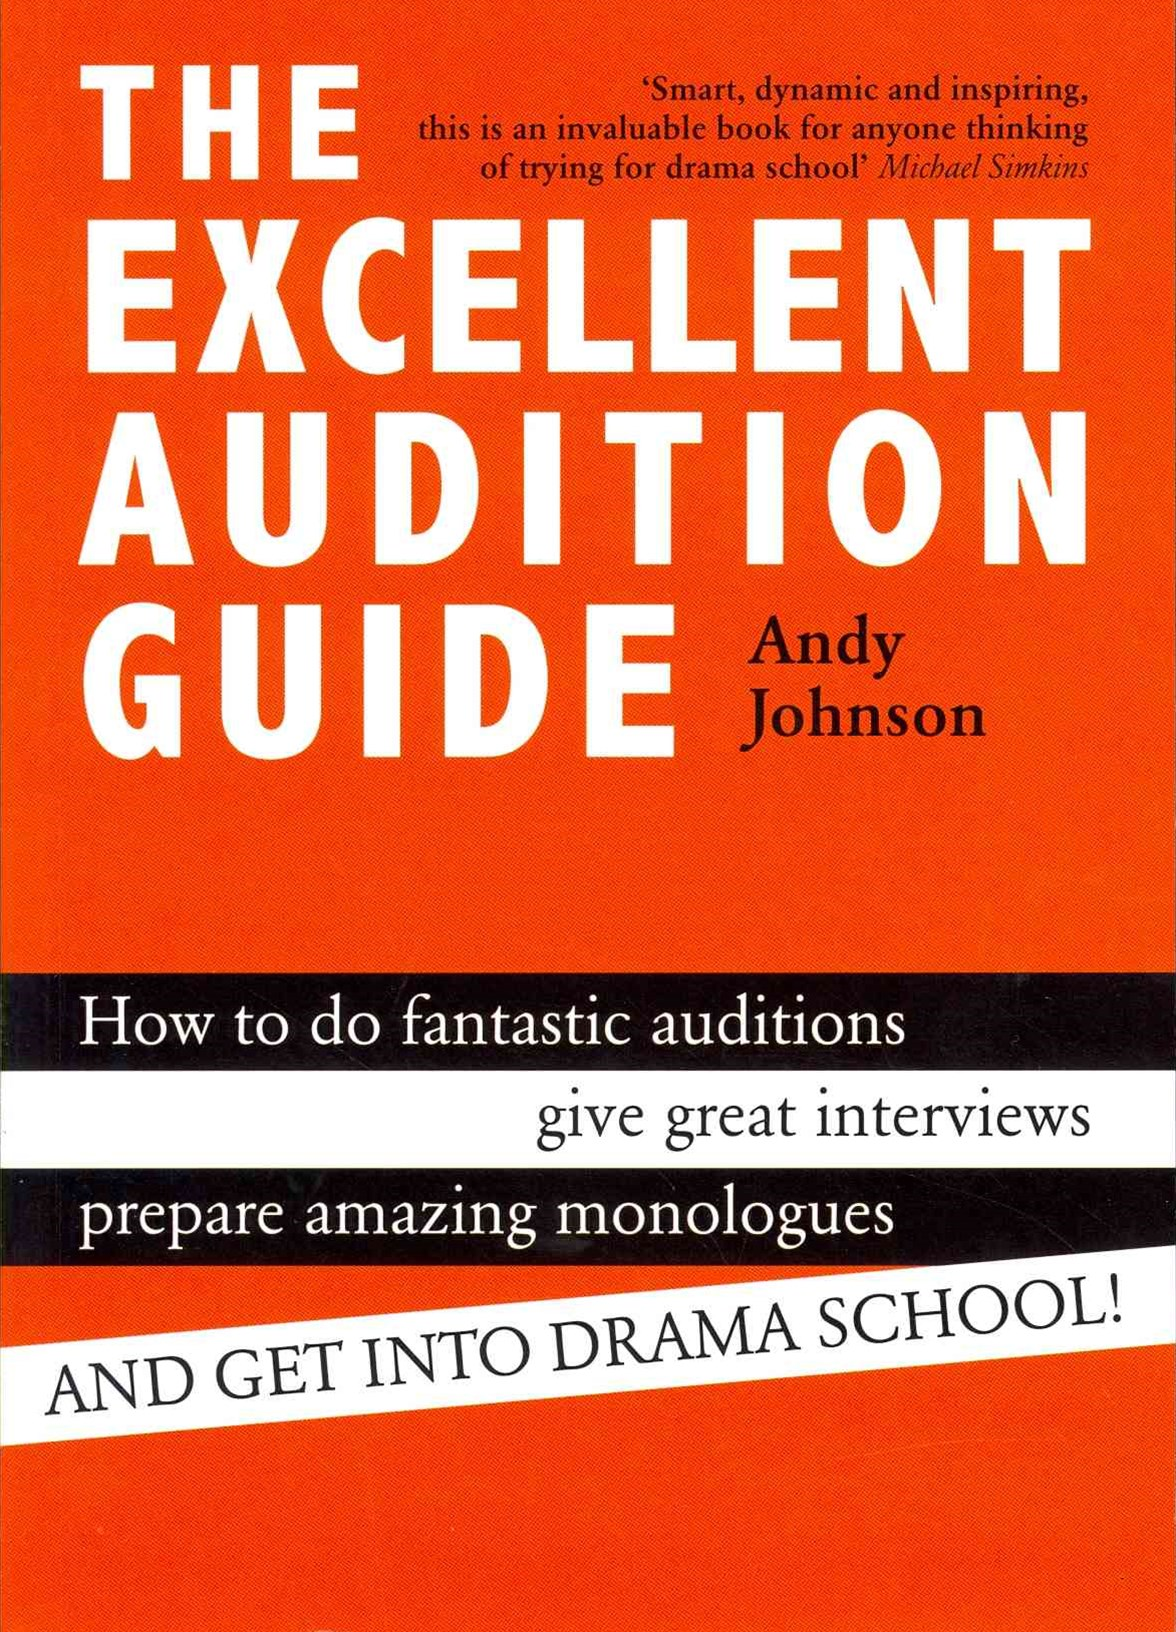 The Excellent Audition Guide